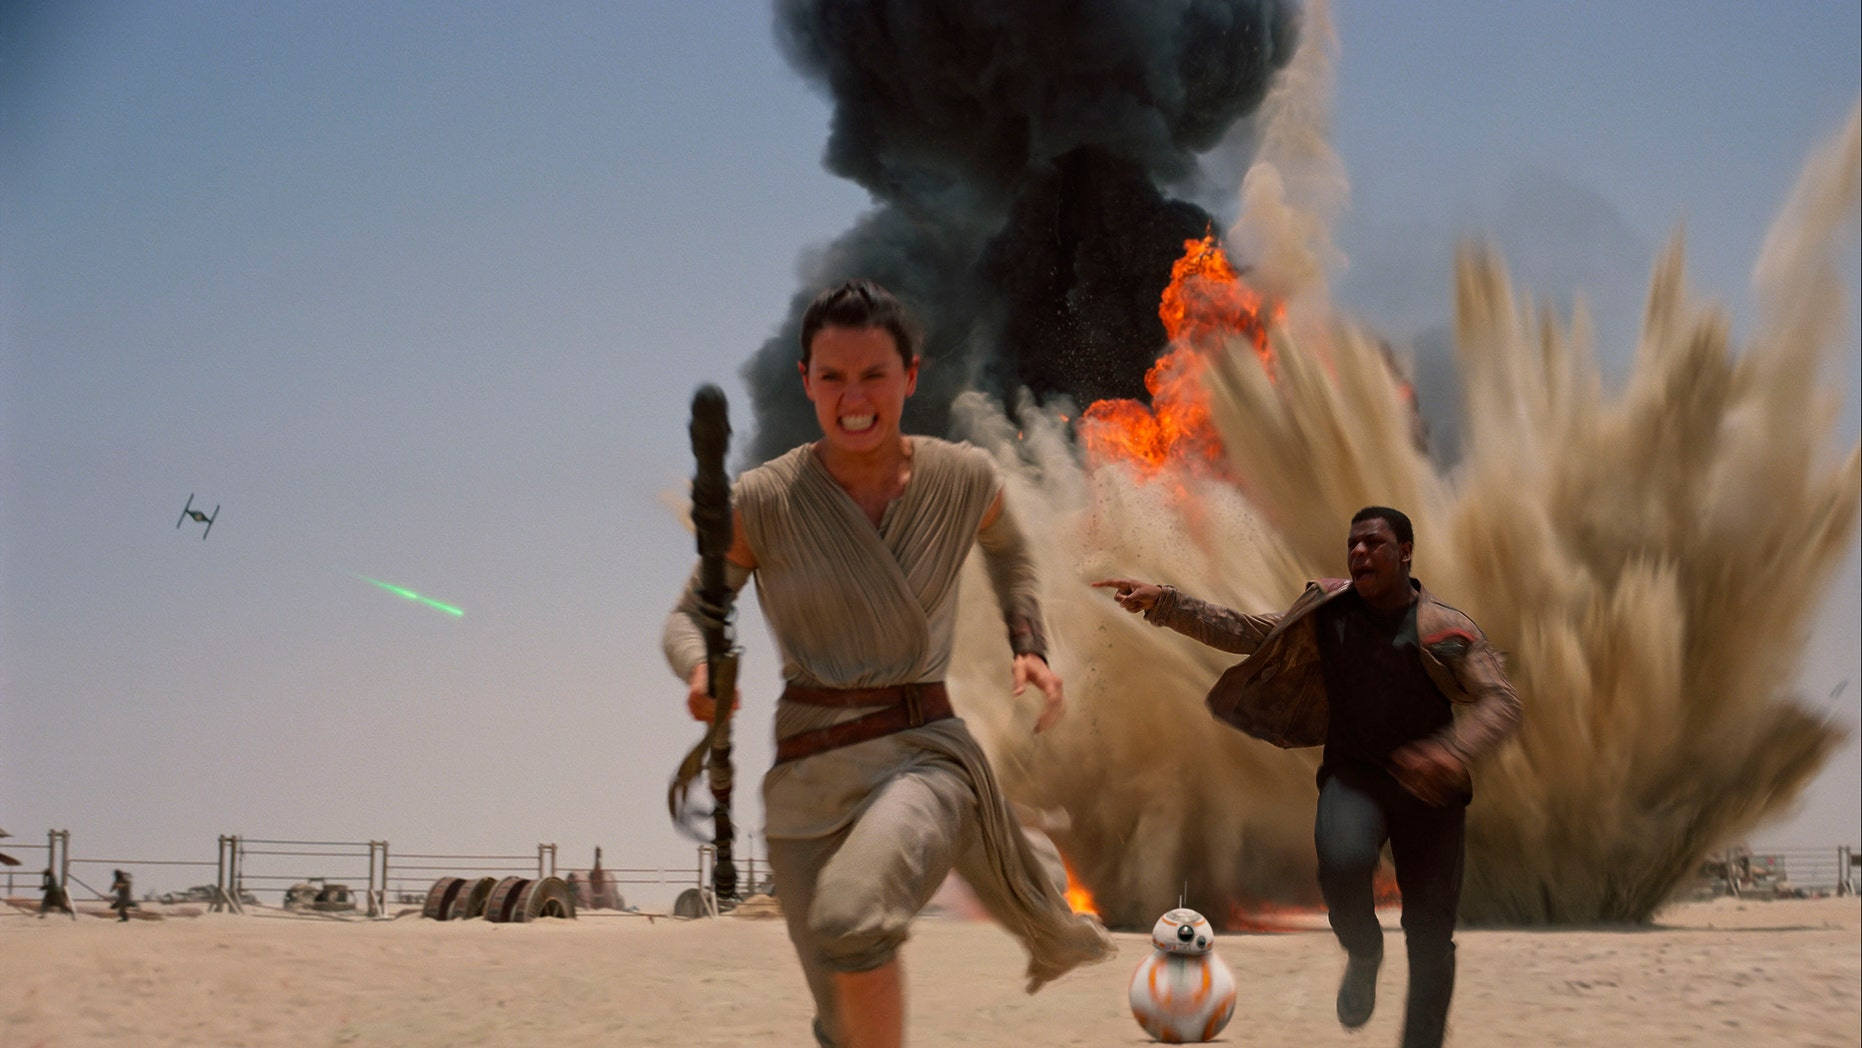 """Daisey Ridley as Rey, left, and John Boyega as Finn, in a scene from the new film, 'Star Wars: Episode VII - The Force Awakens."""""""